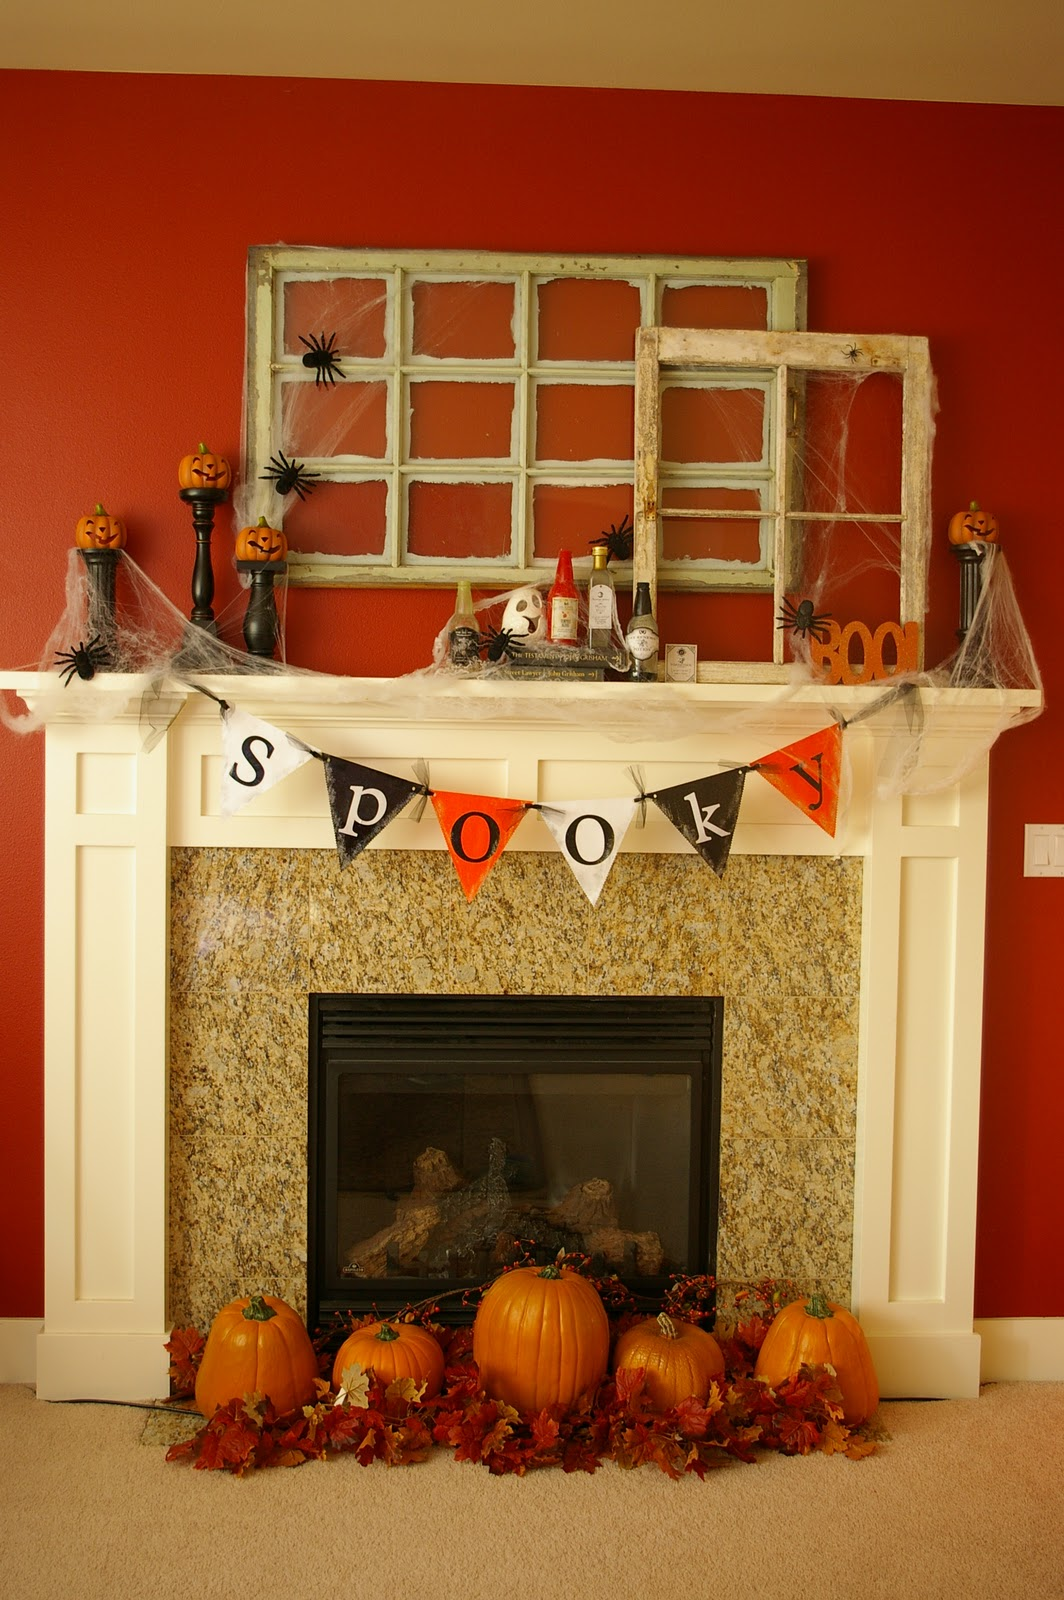 Halloween Wall Decoration Ideas : Awesome halloween decorating ideas orange wall flag